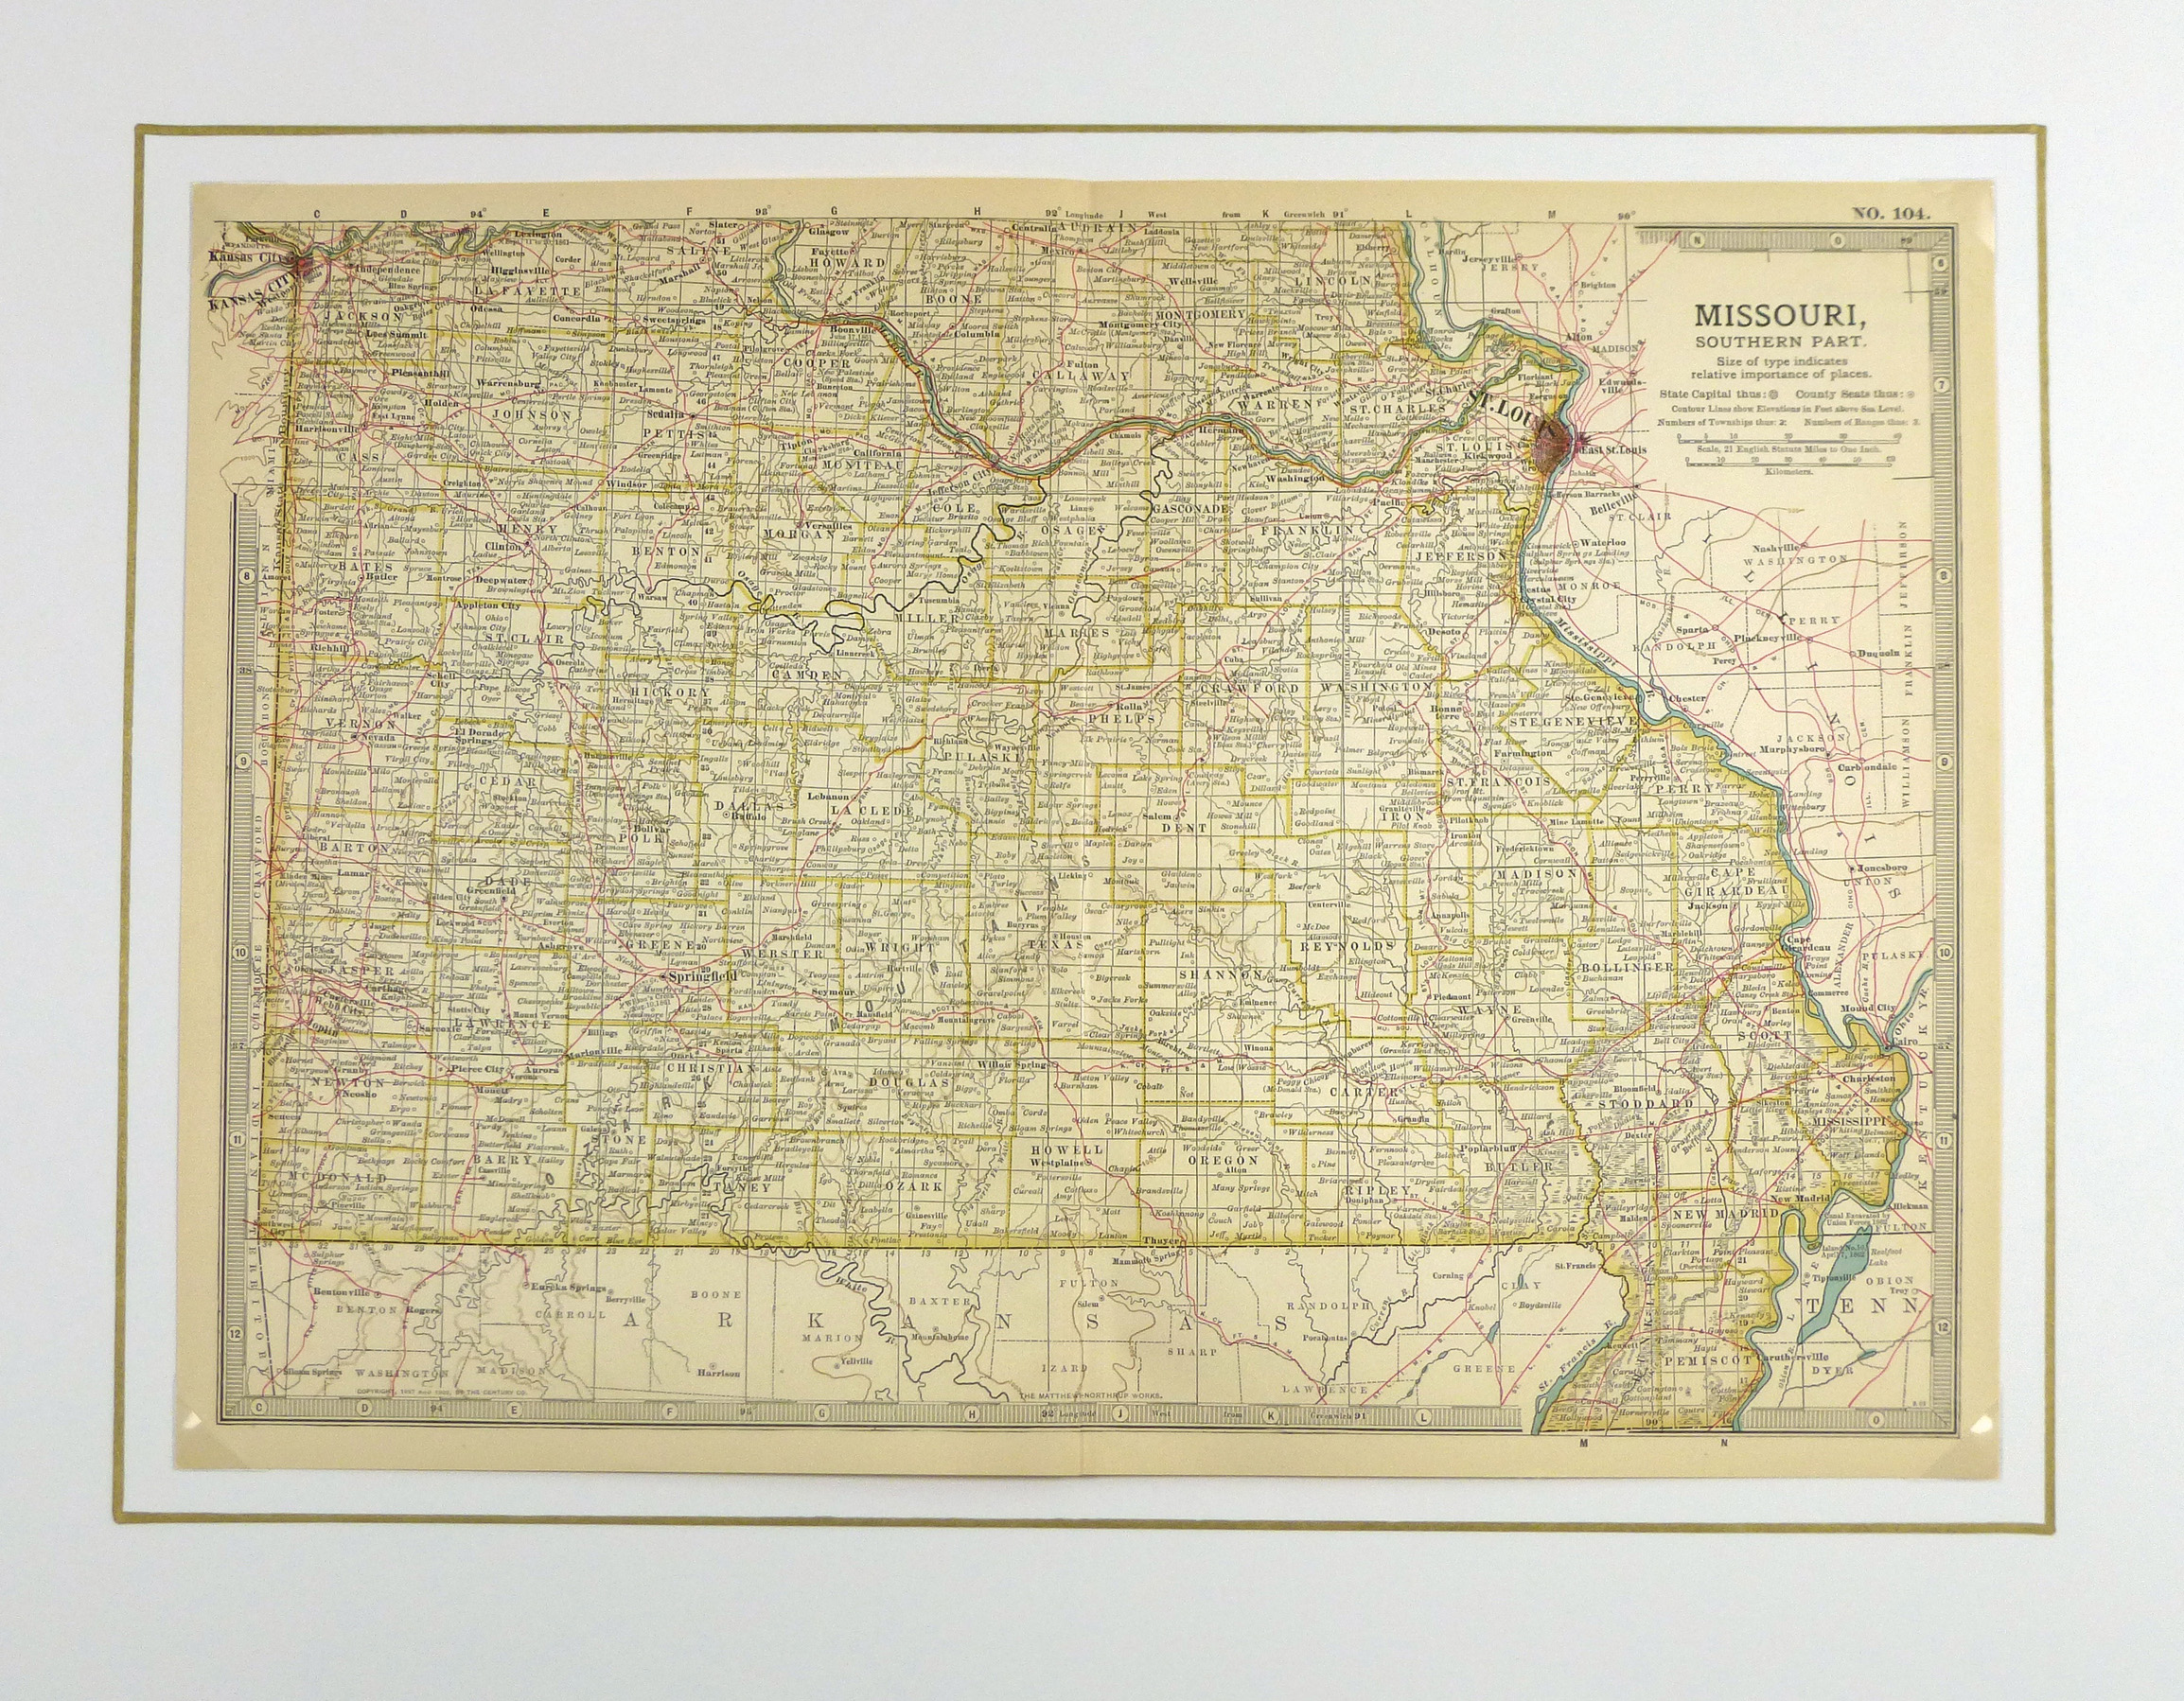 Southern Missouri, 1902 - Original Art, Antique Maps & Prints